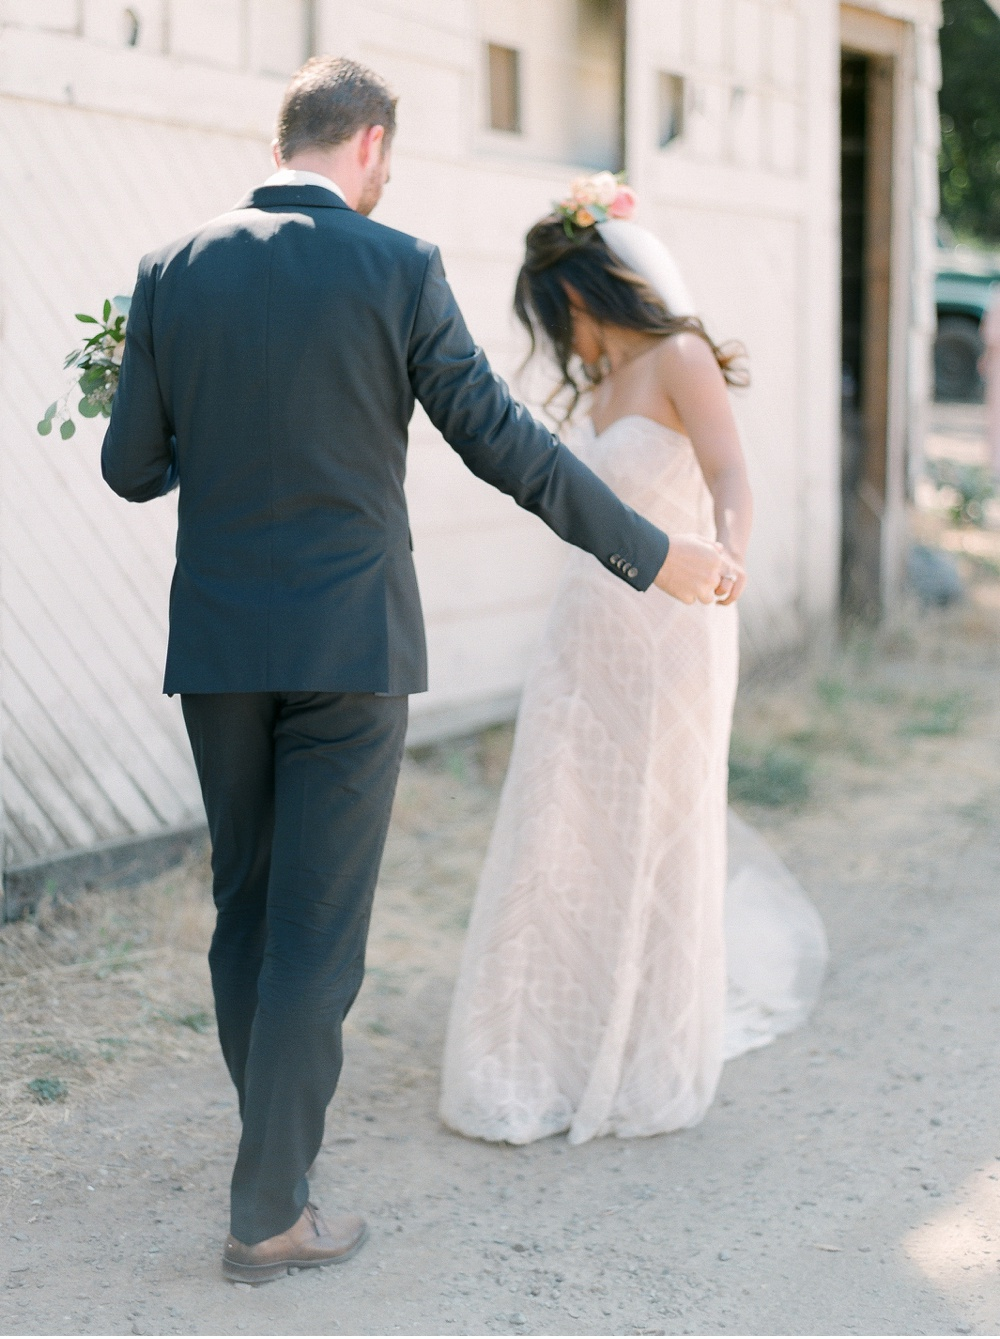 Provence_Destination_Wedding_Photographer©MadalinaSheldon_0031.jpg